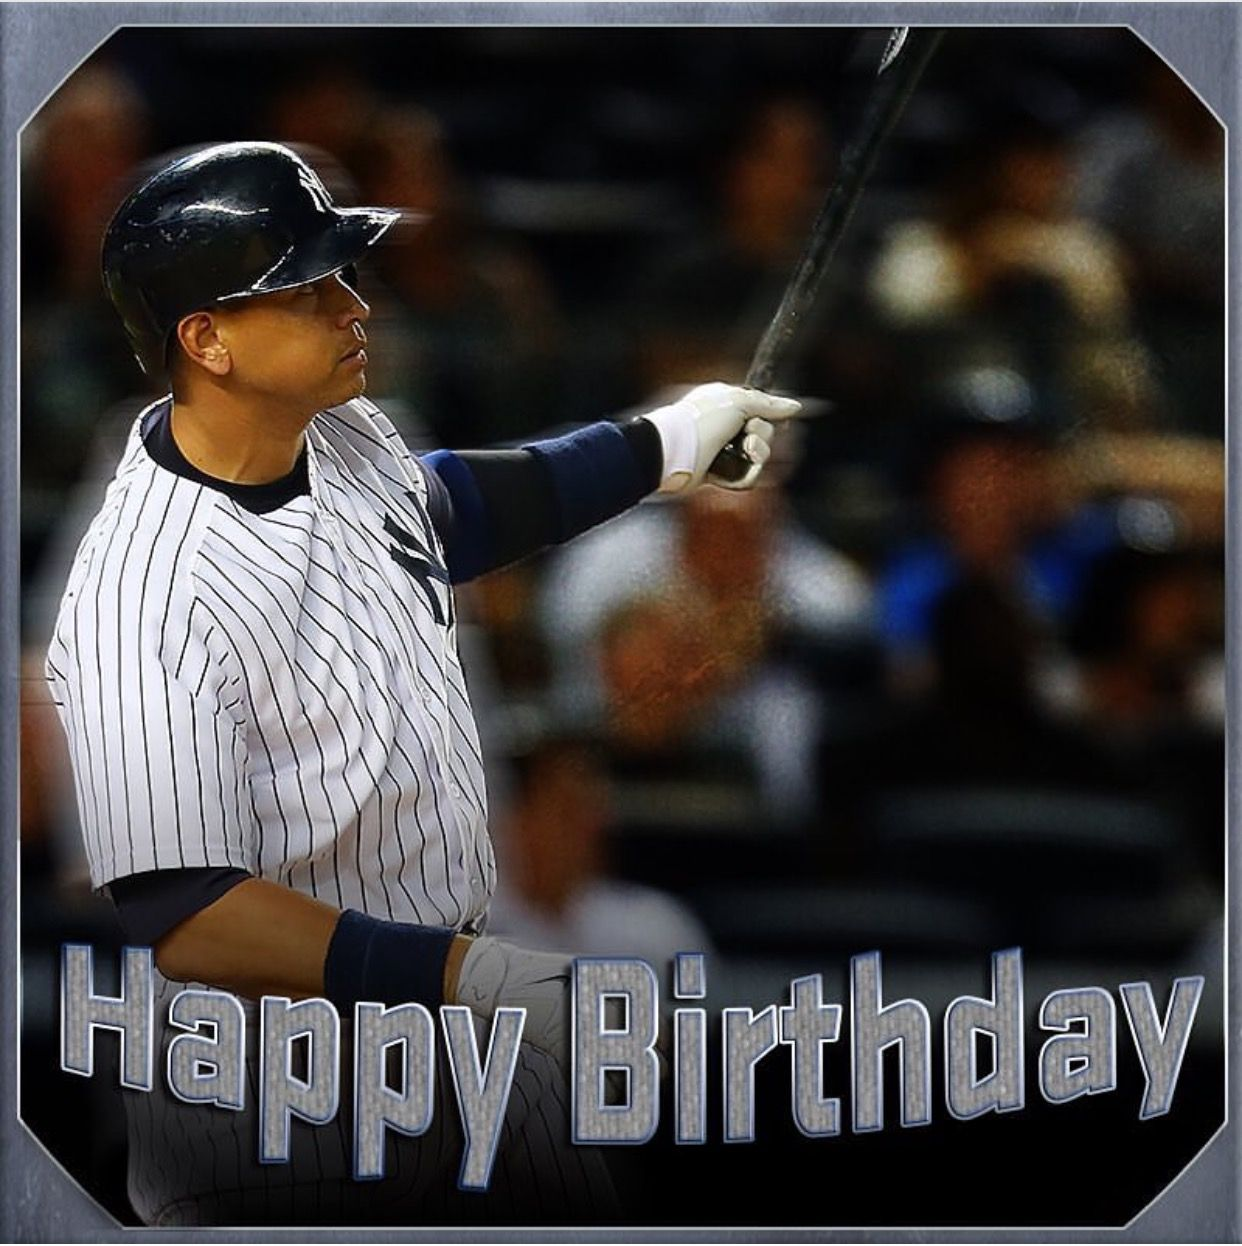 July 27 2015 Today Happy Birthday Alex Rodriguez July 27 1975 Yankees News My Yankees Ny Yankees